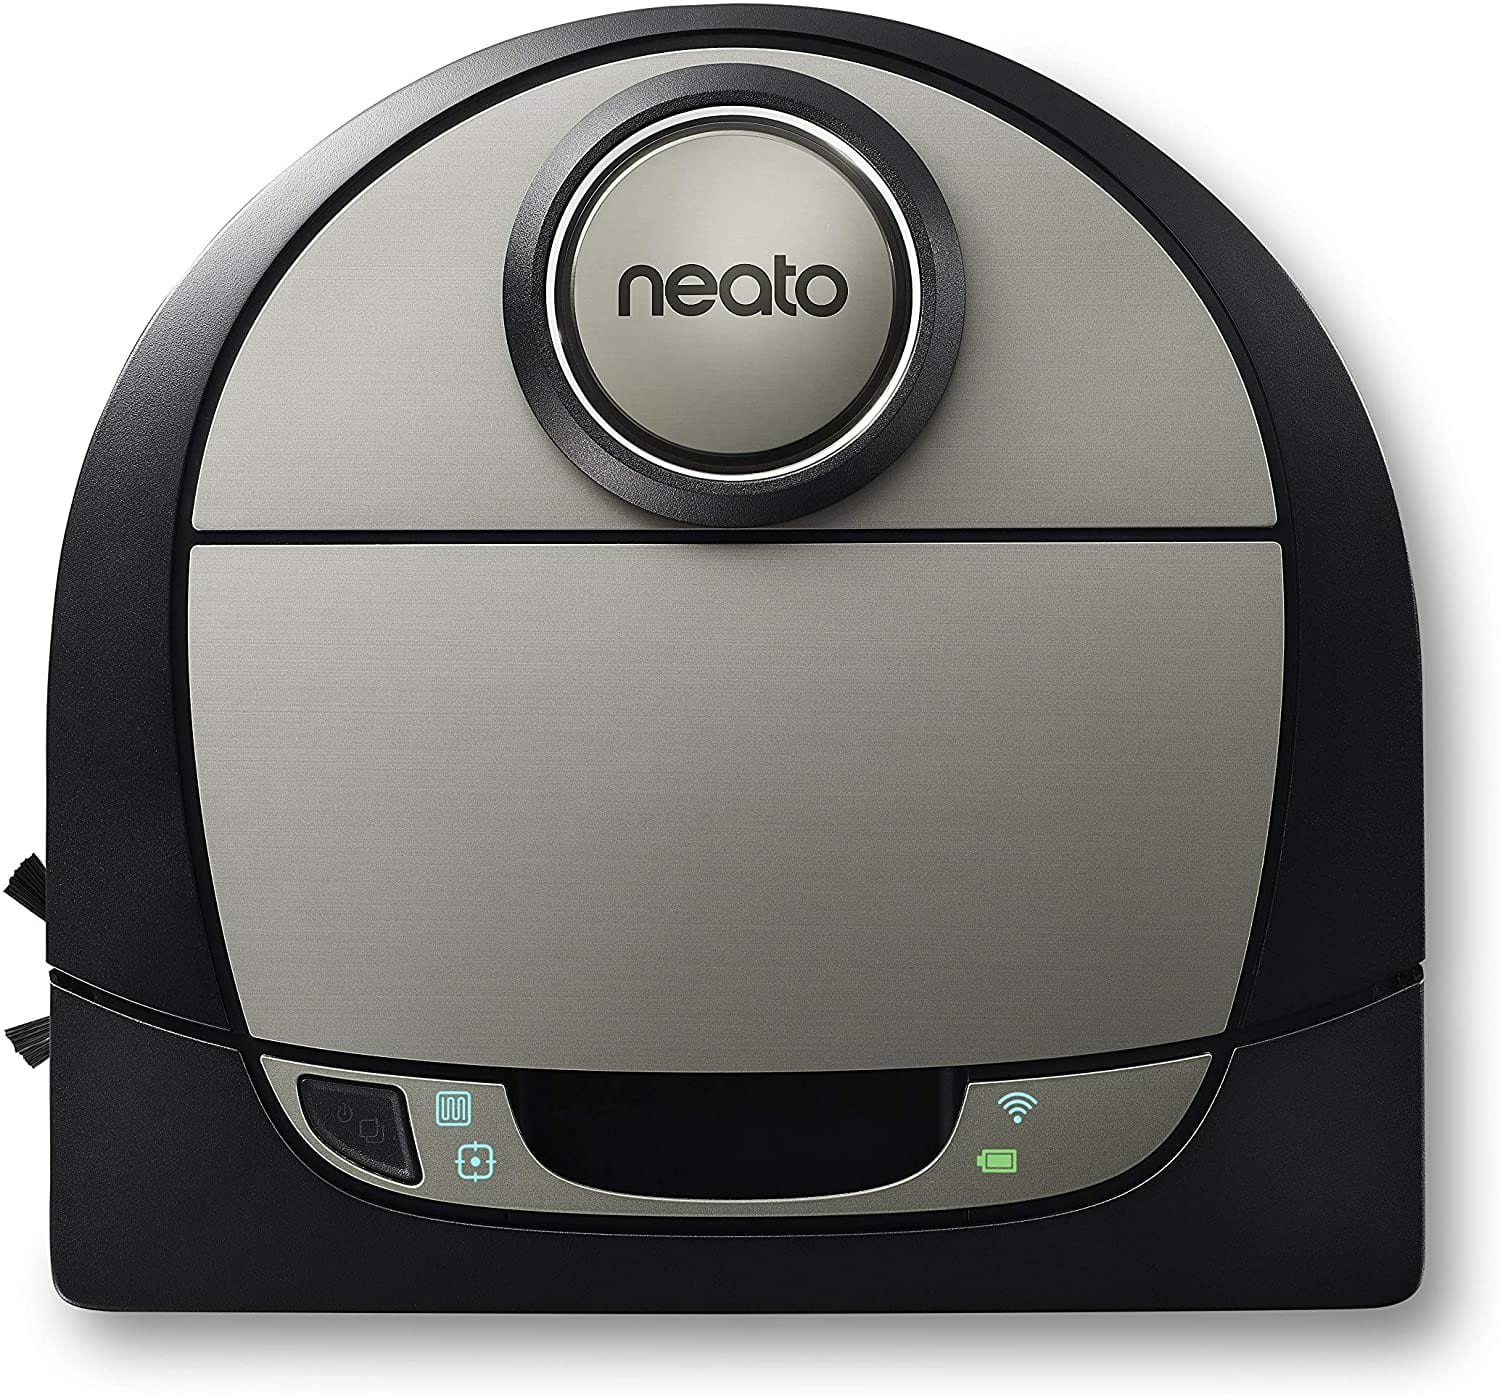 Amazon.com - Neato Robotics D7 $472.79 with -$115.72 click and save coupon + extra 10% back on Amazon Card